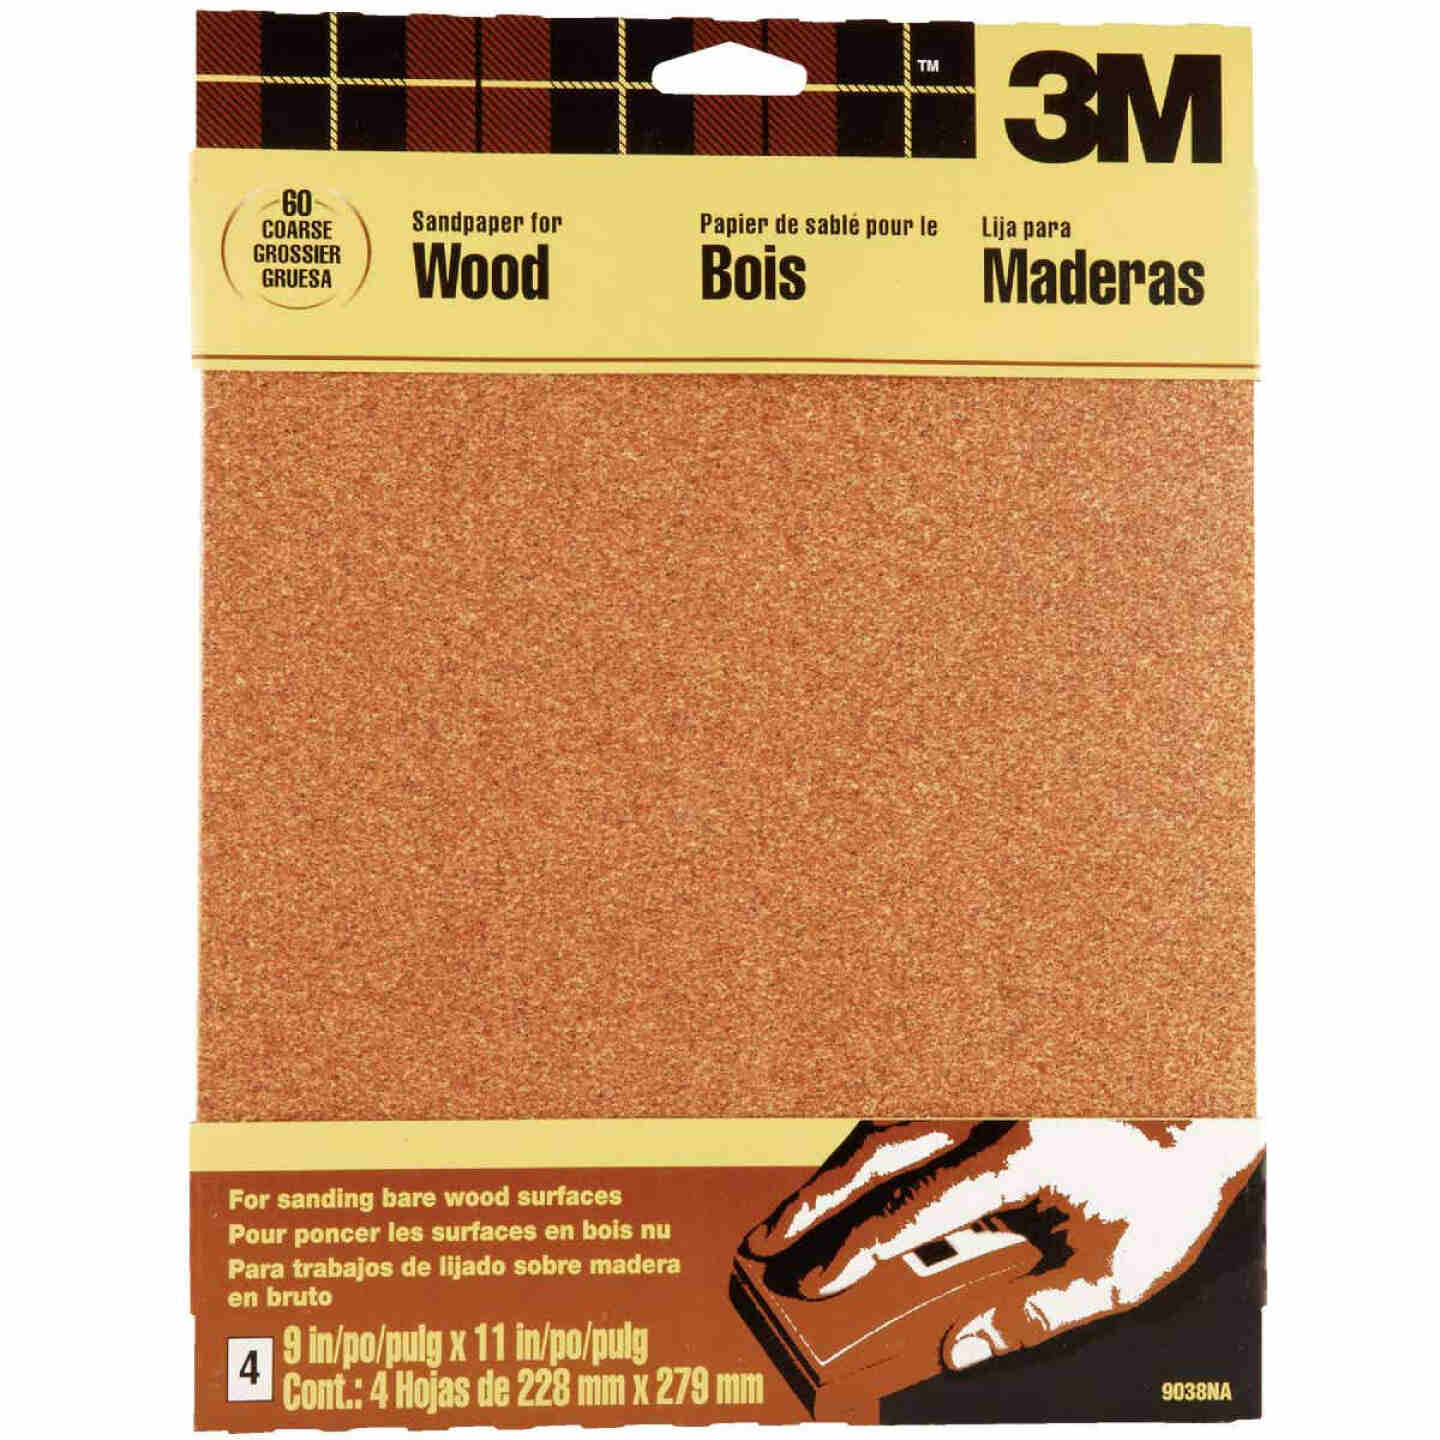 3M Bare Wood 9 In. x 11 In. 60 Grit Coarse Sandpaper (4-Pack) Image 1